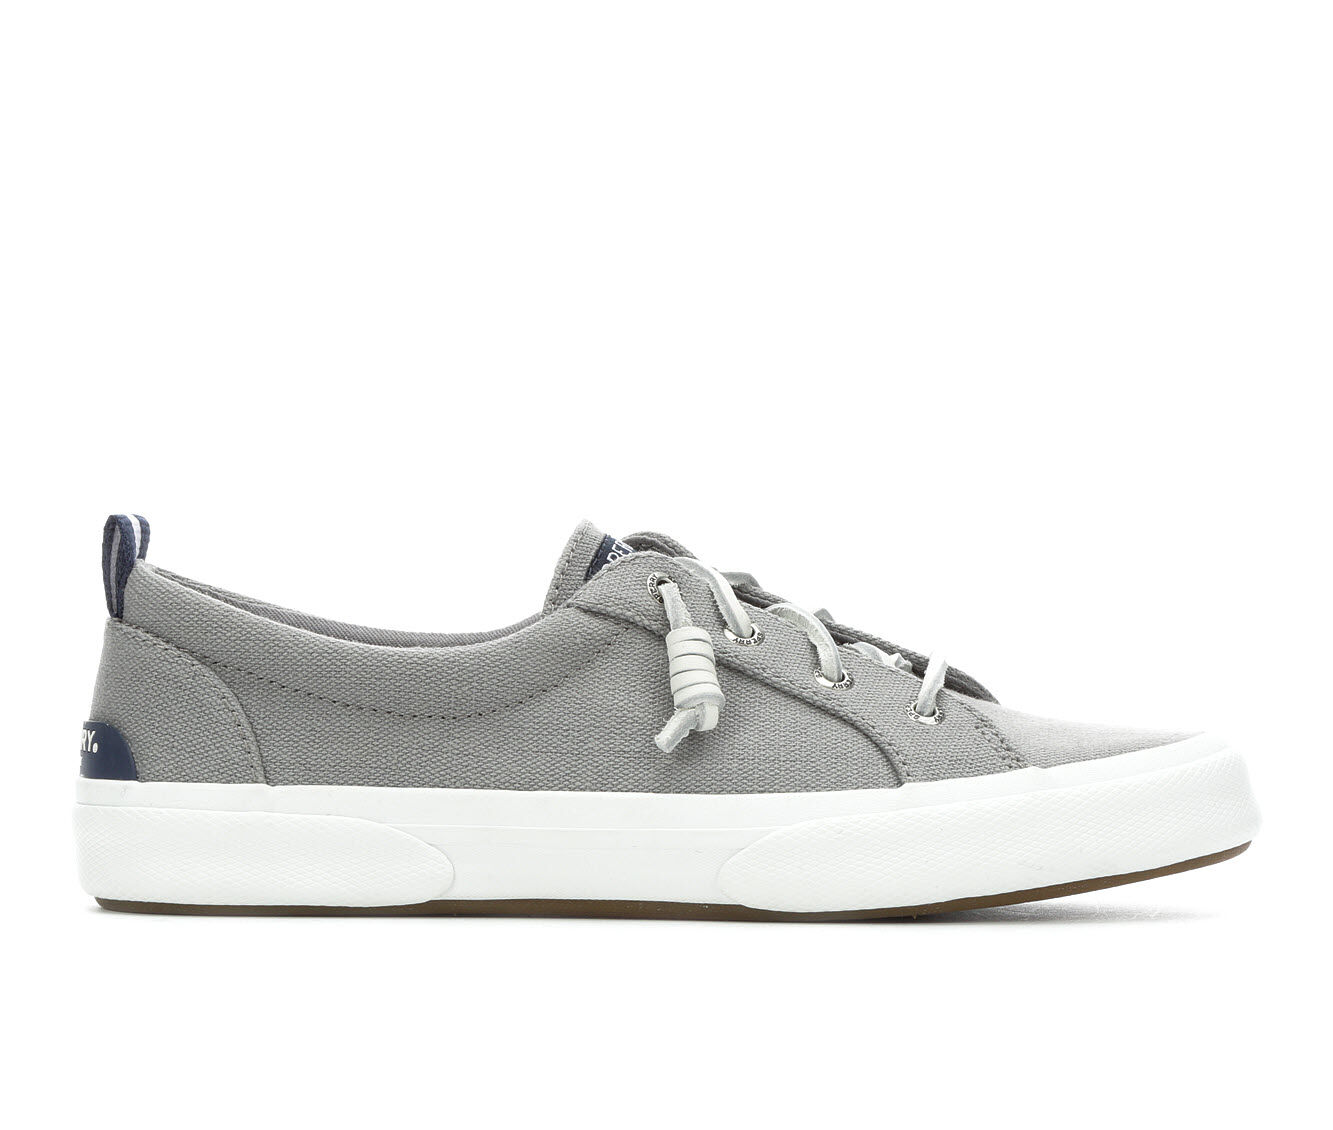 Women's Sperry Pier Wave Lace to Toe Canvas Sneakers GREY